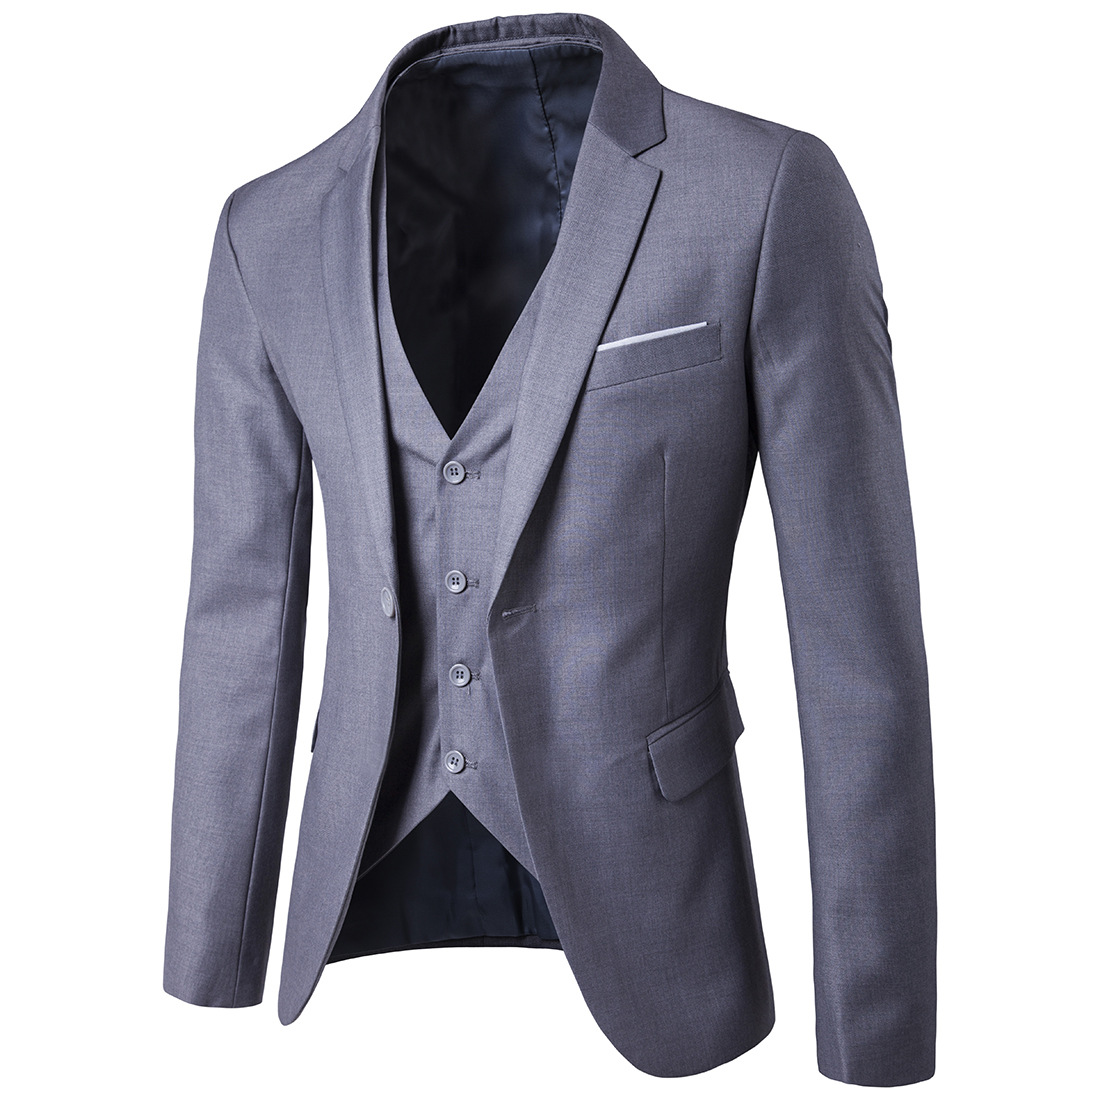 2019 Business Leisure Suit Three-piece Set Groom Best Man Wedding One-Button Suit Set Light Gray S-6xl